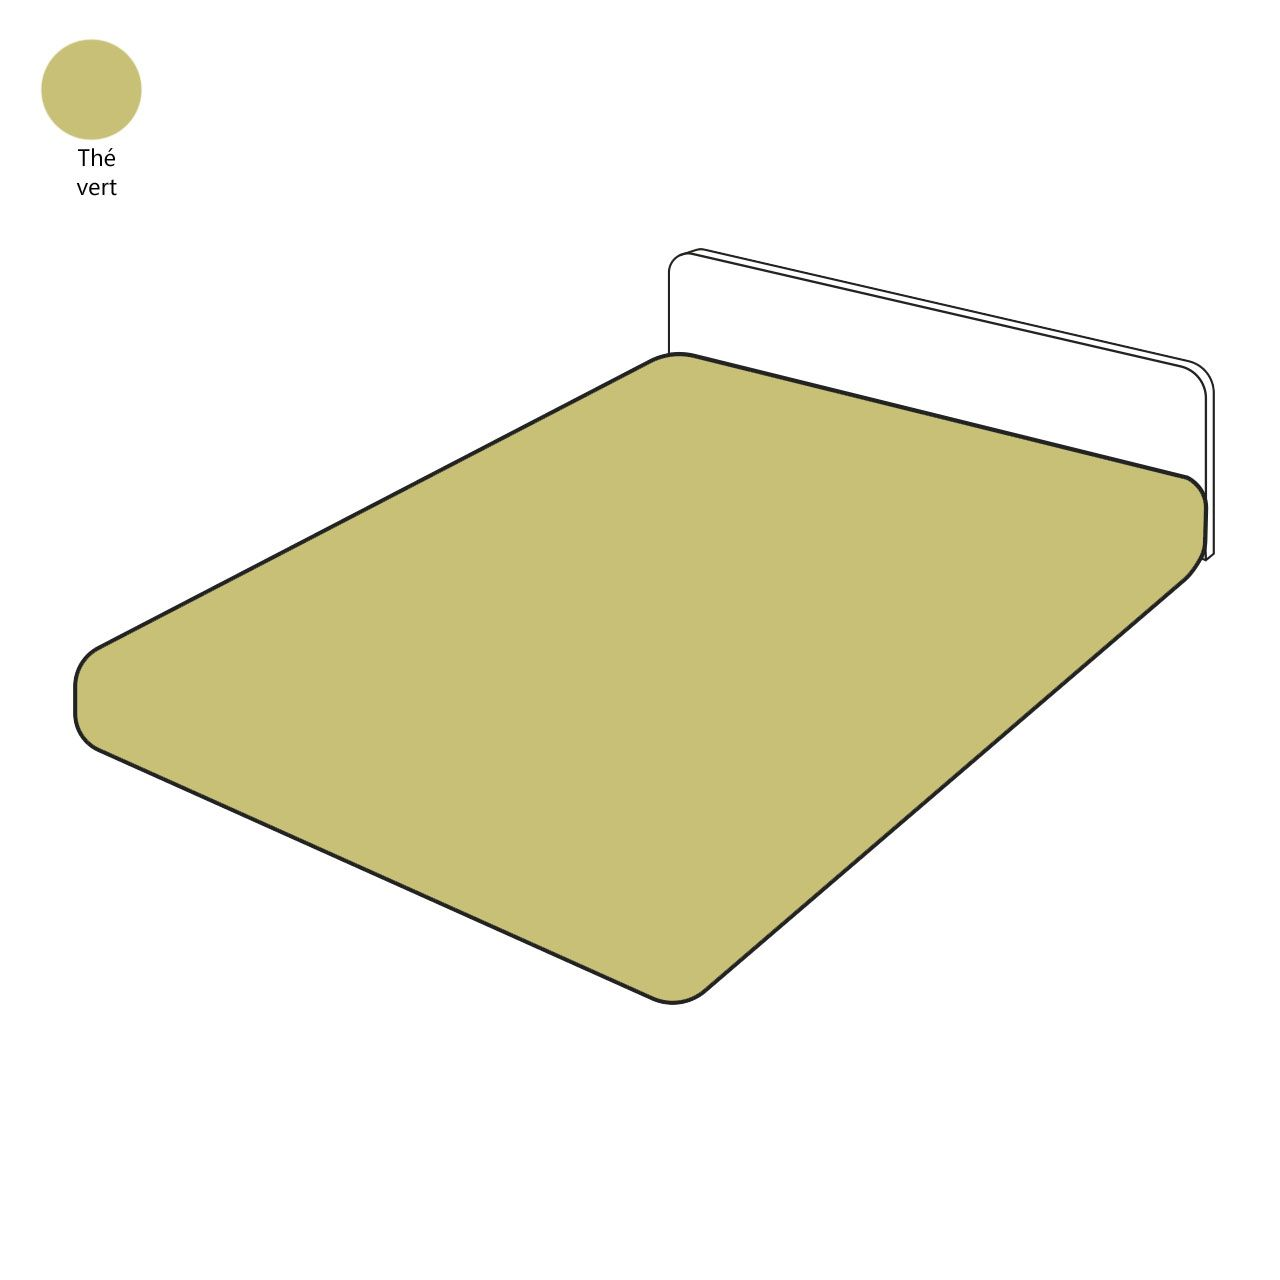 Drap housse percale th vert 140x200 sylvie thiriez for Drap housse 140x200